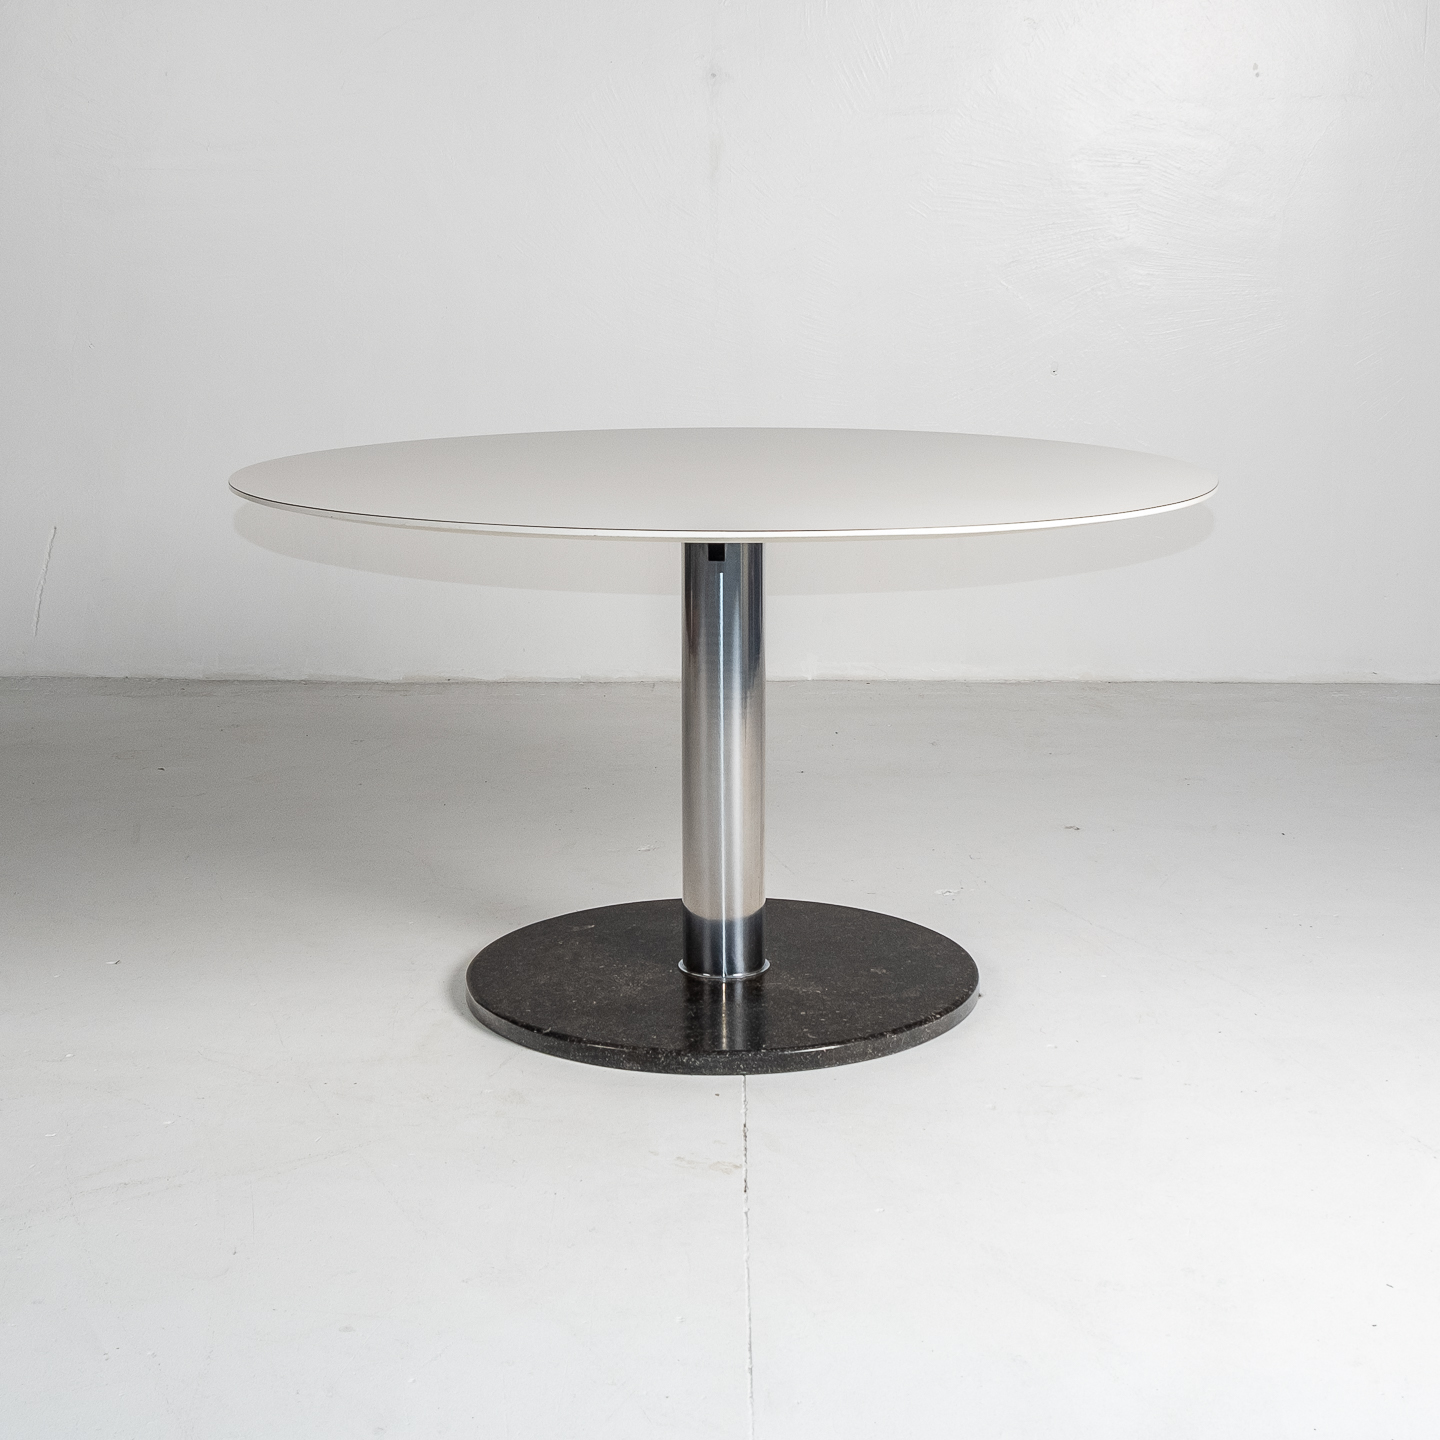 Dining Table With Slate Base And White Laminate Top By Alfred Hendrickx For Belform, 1960s, Belgium 64